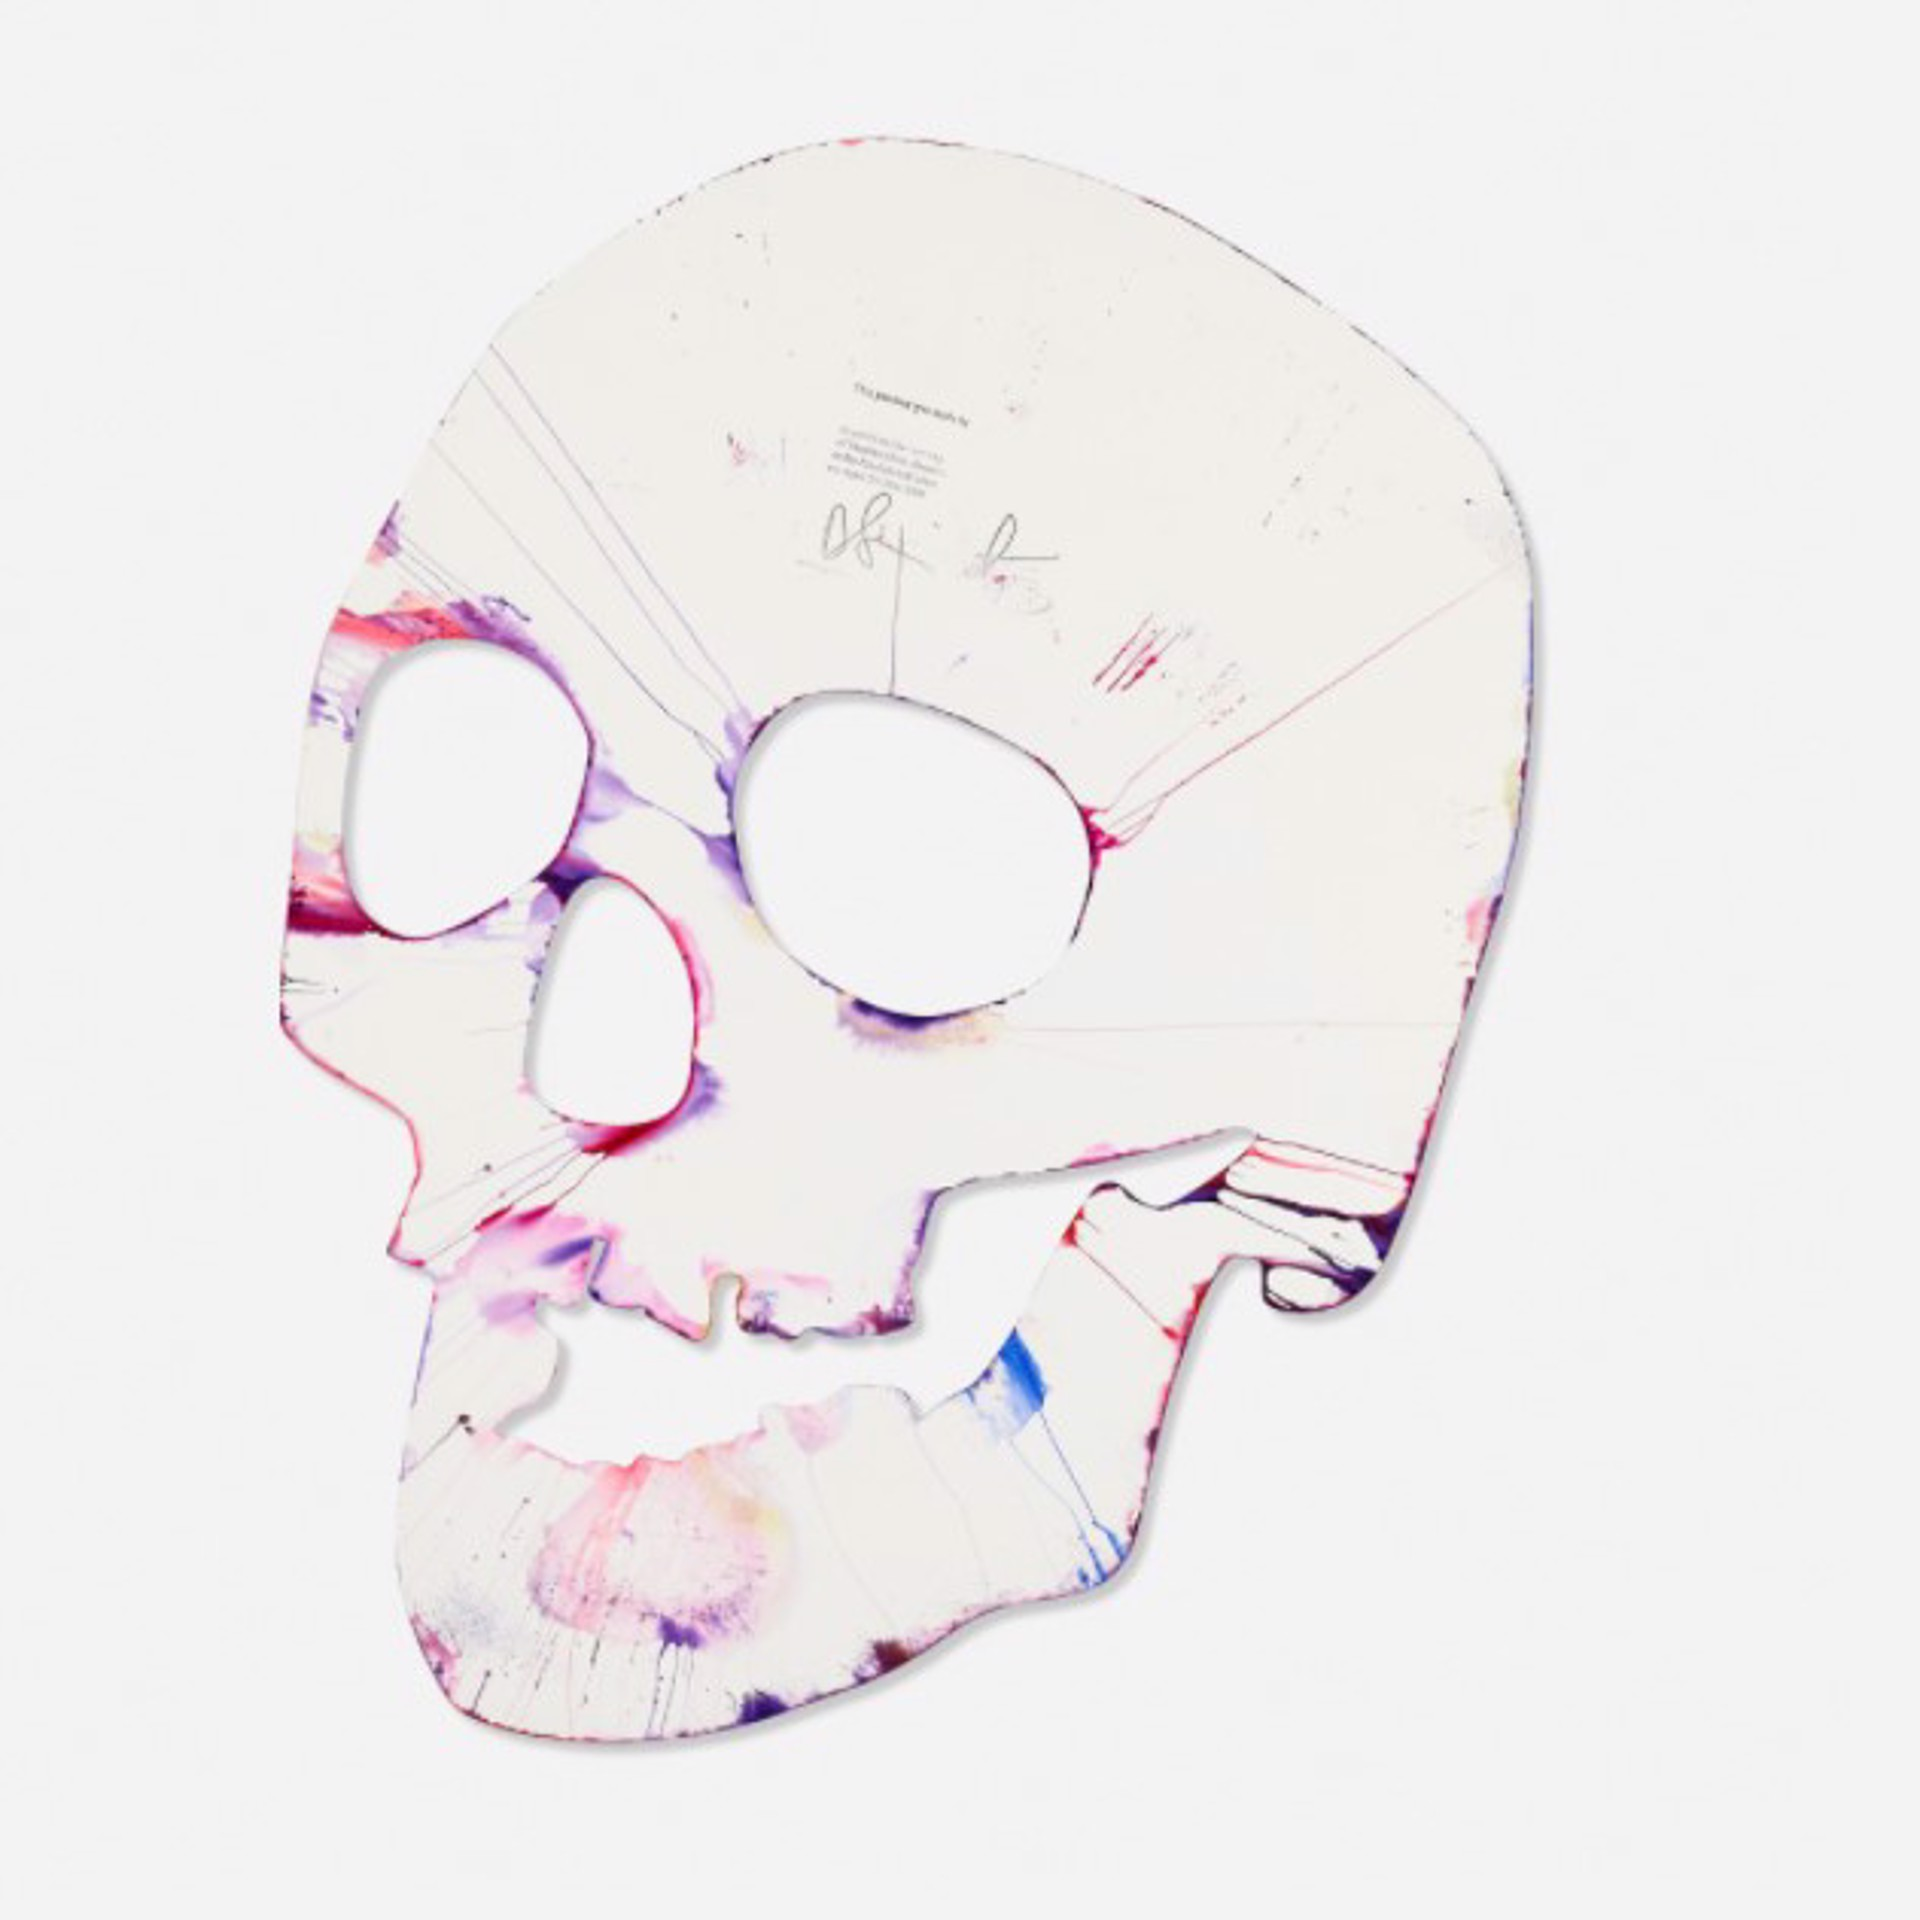 Damien Hirst b.1965 Skull Spin Painting acrylic on paper